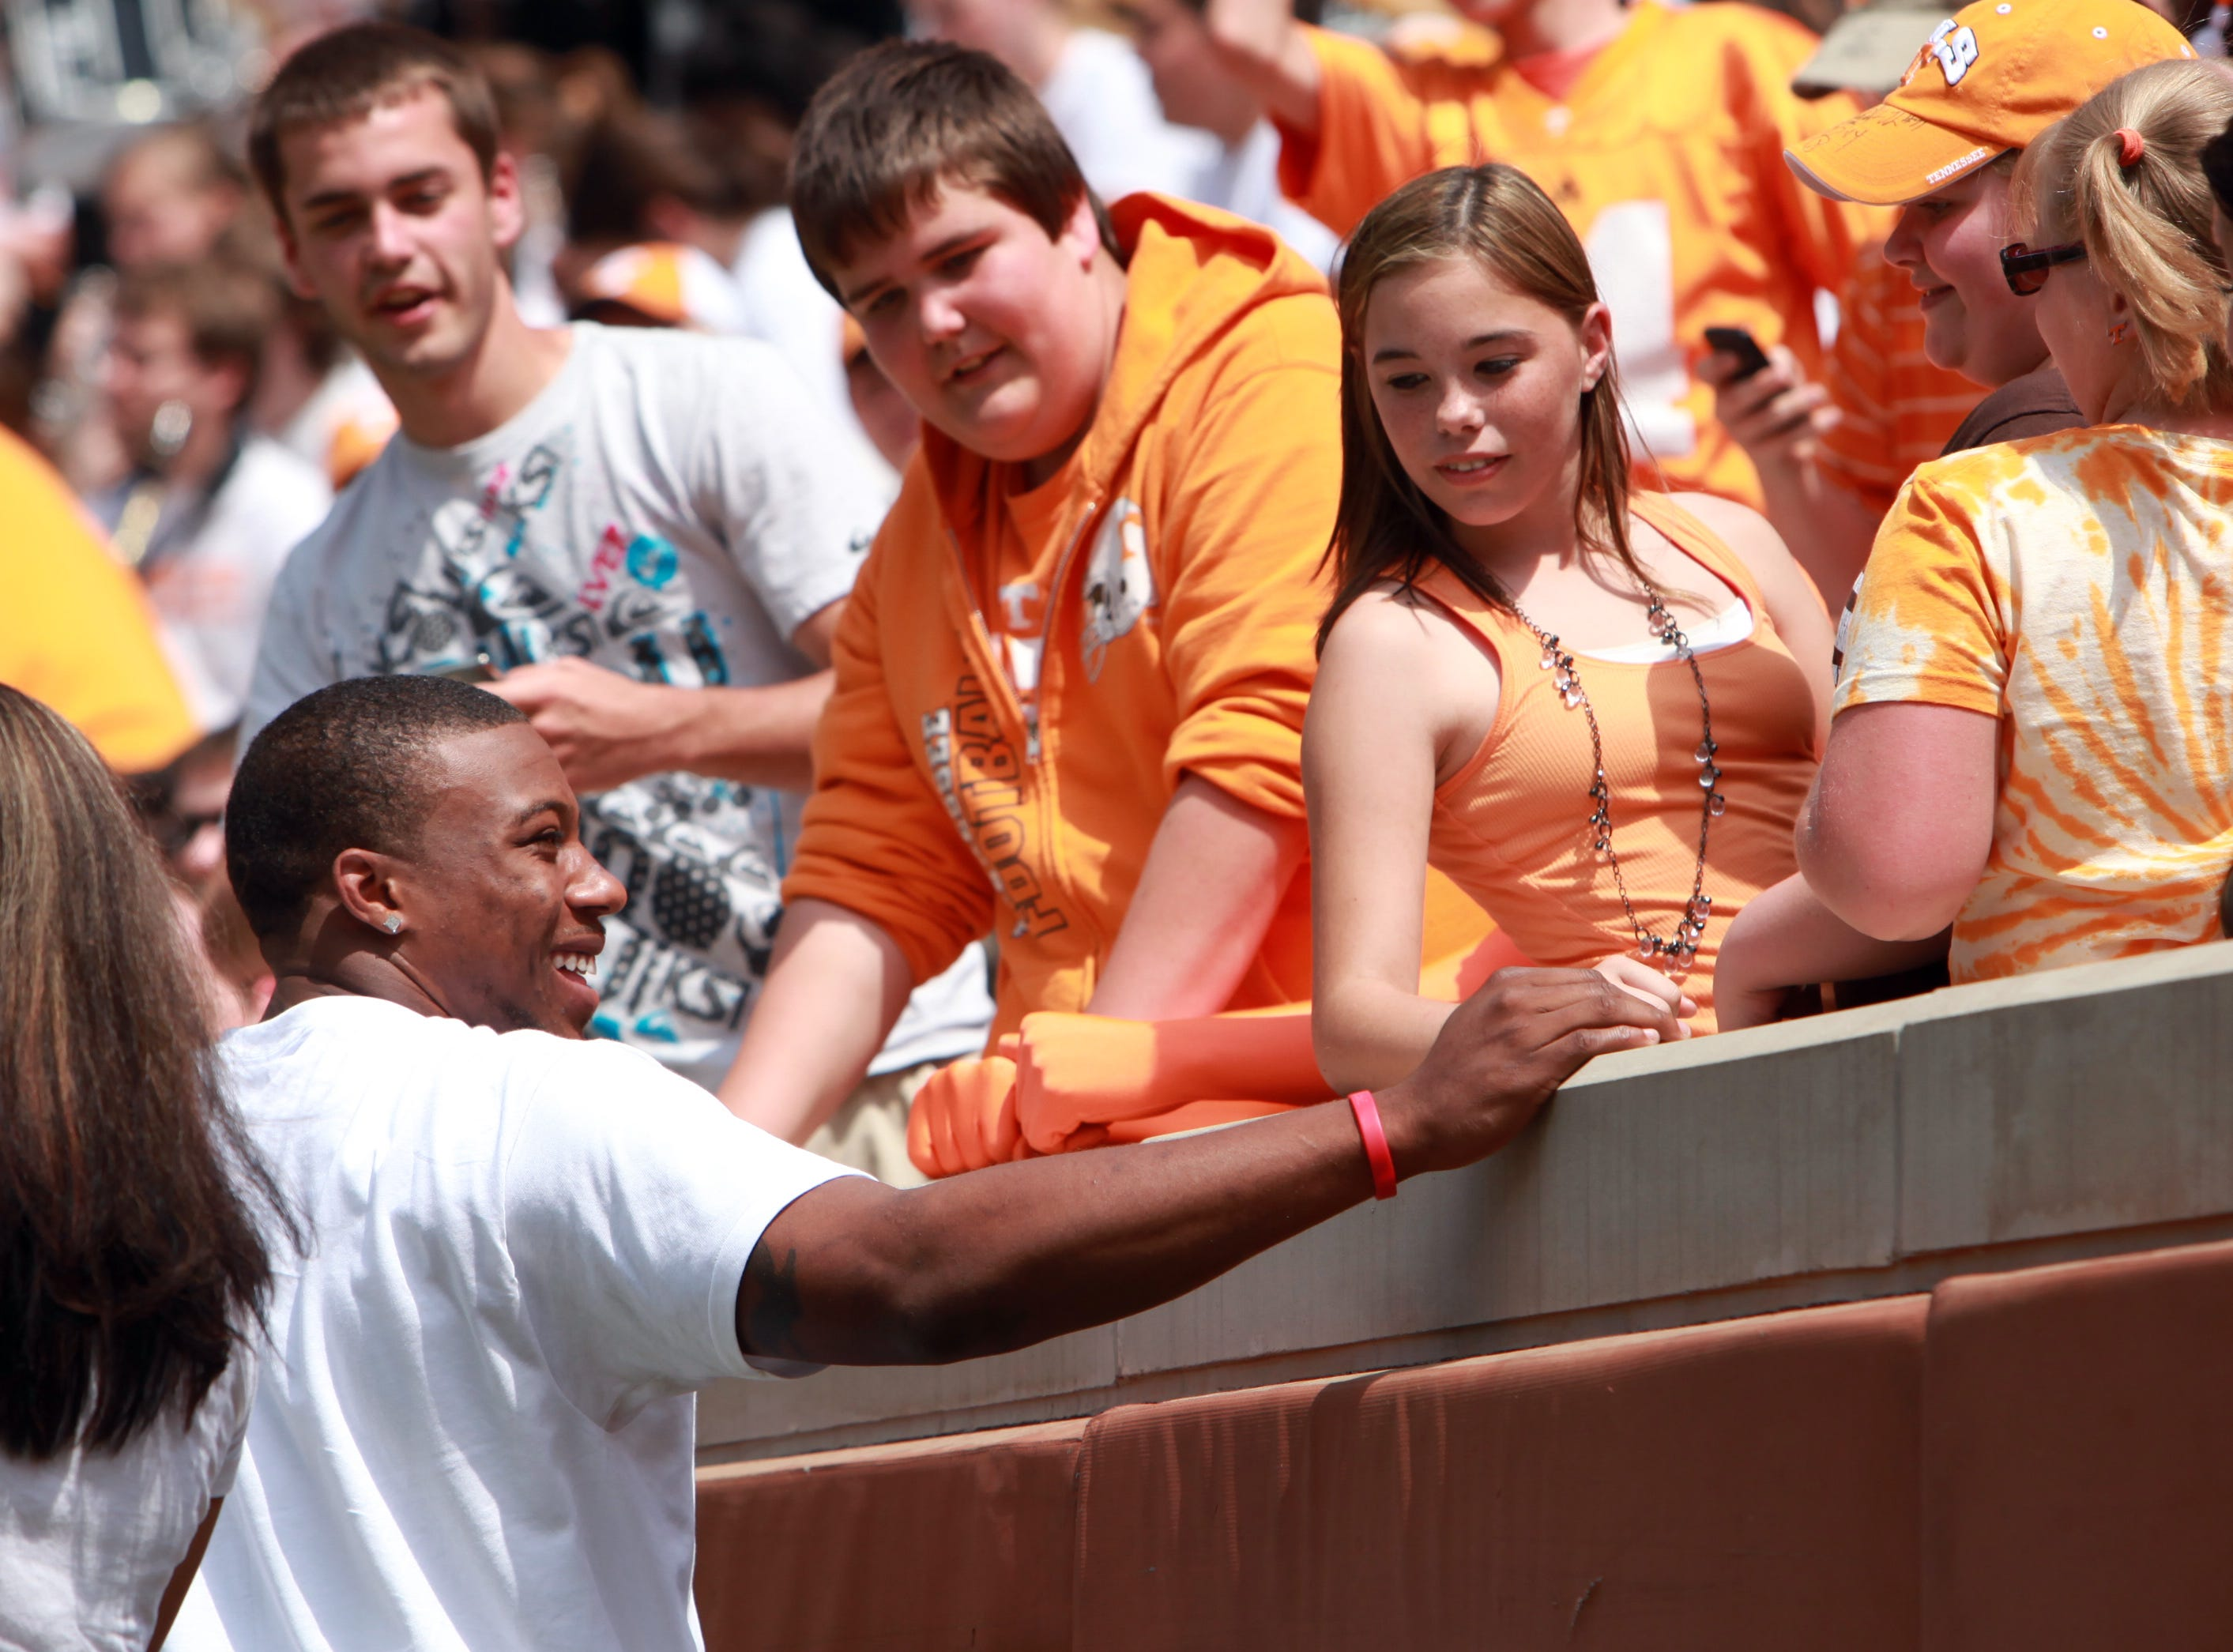 Former Tennessee standout Eric Berry, left, greets fans during the Orange and White game at Neyland Stadium Saturday, Apr. 17, 2010.